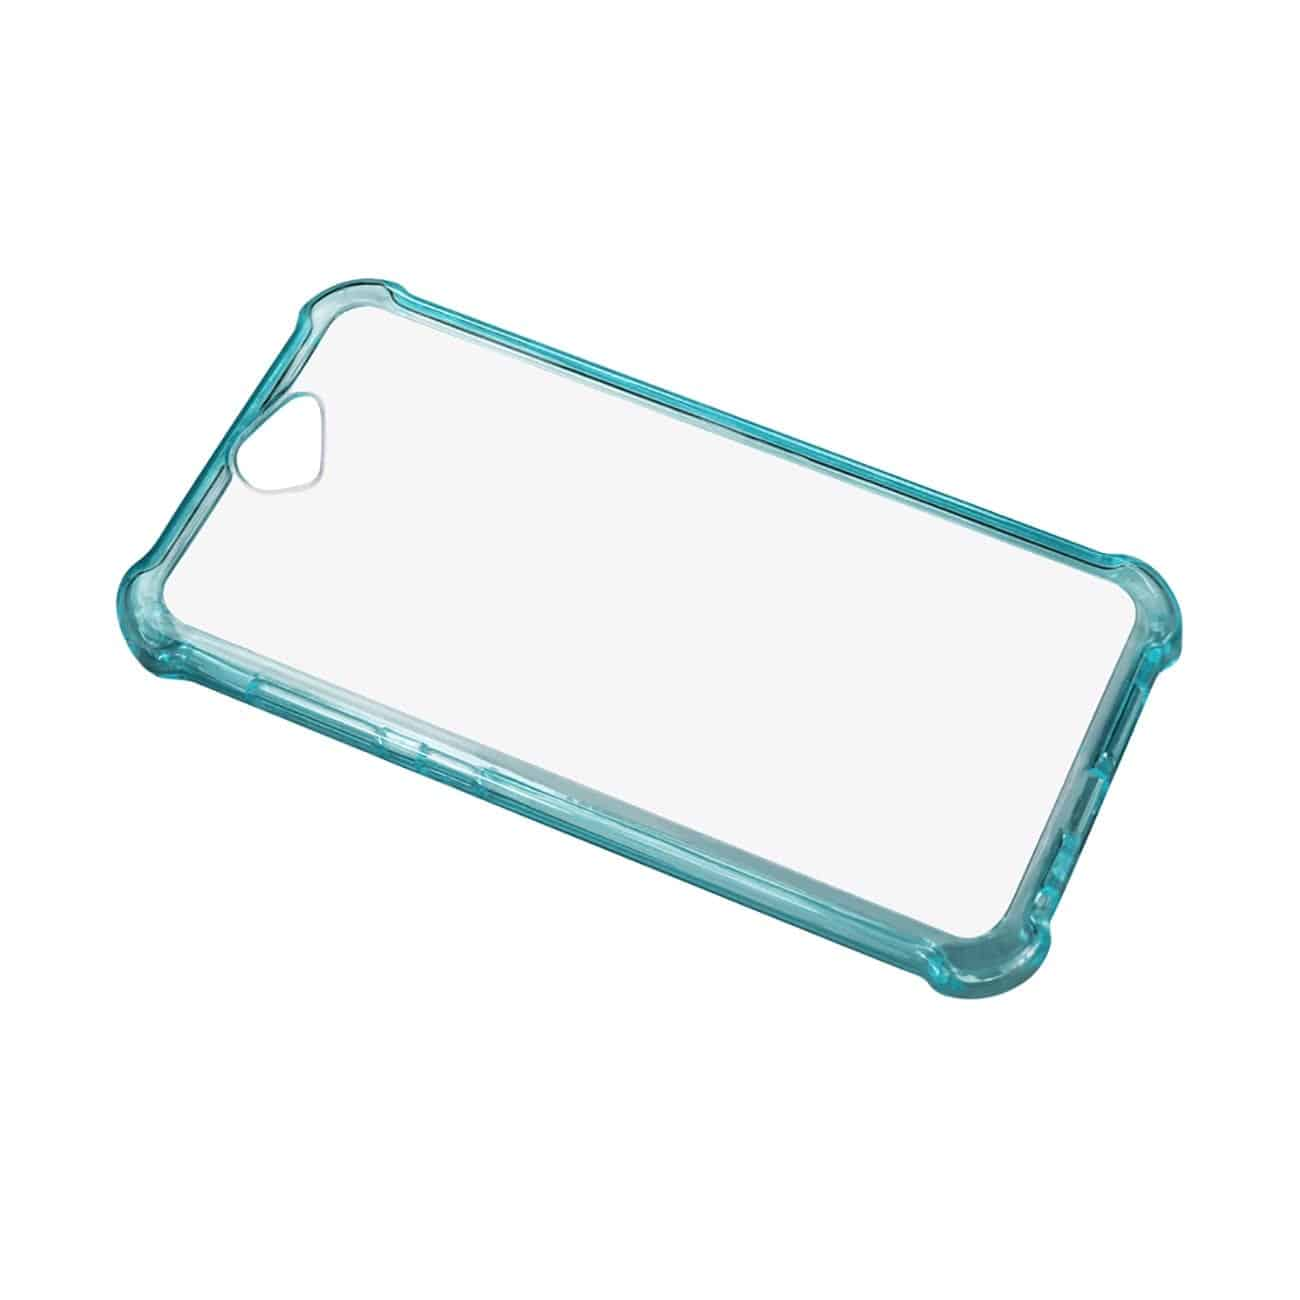 HTC ONE A9 MIRROR EFFECT CASE WITH AIR CUSHION PROTECTION IN CLEAR NAVY